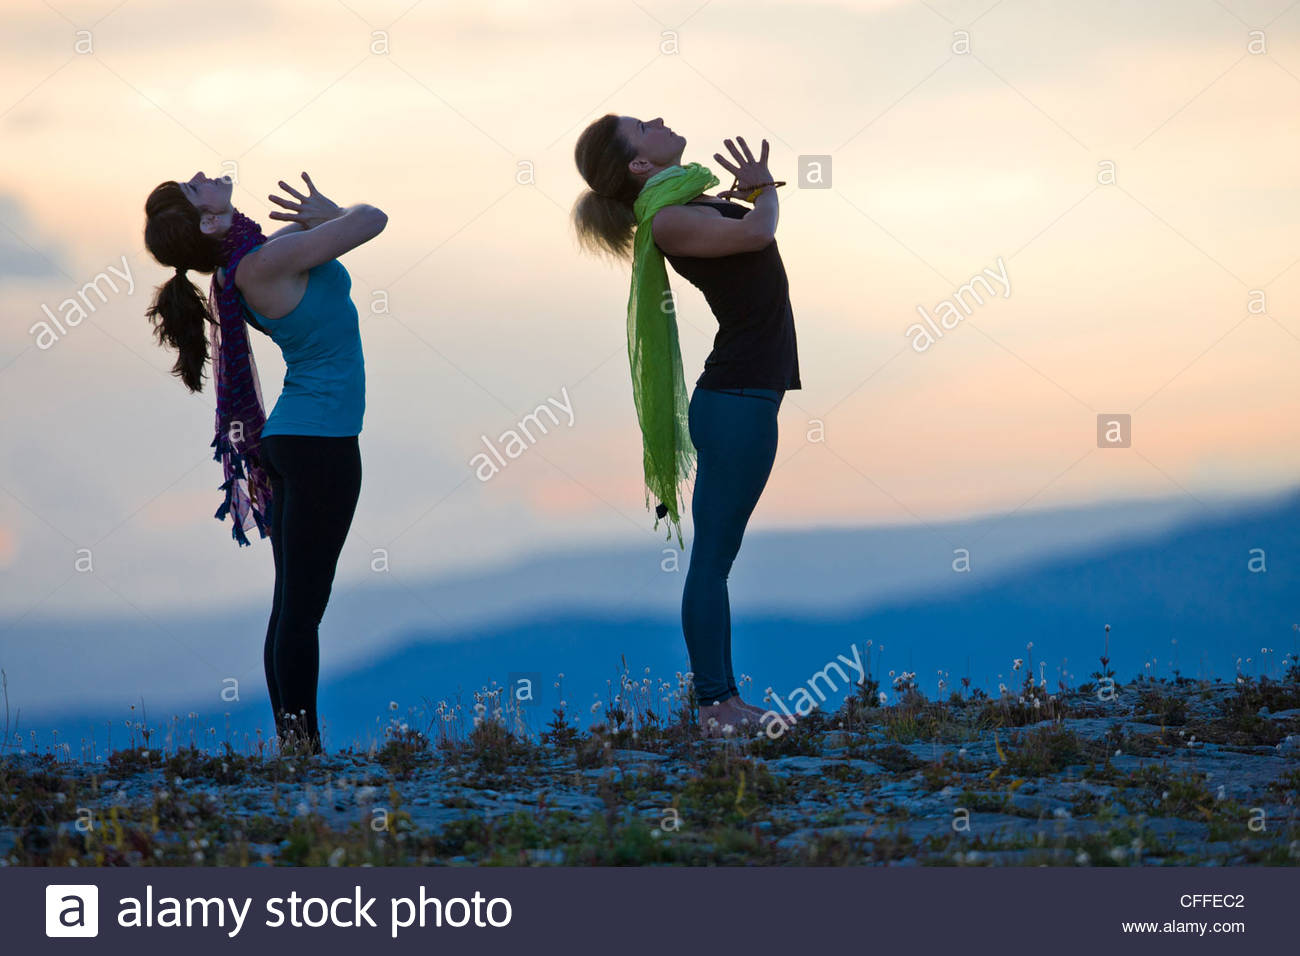 Two women perform Hatha Yoga poses on a mountain top. - Stock Image